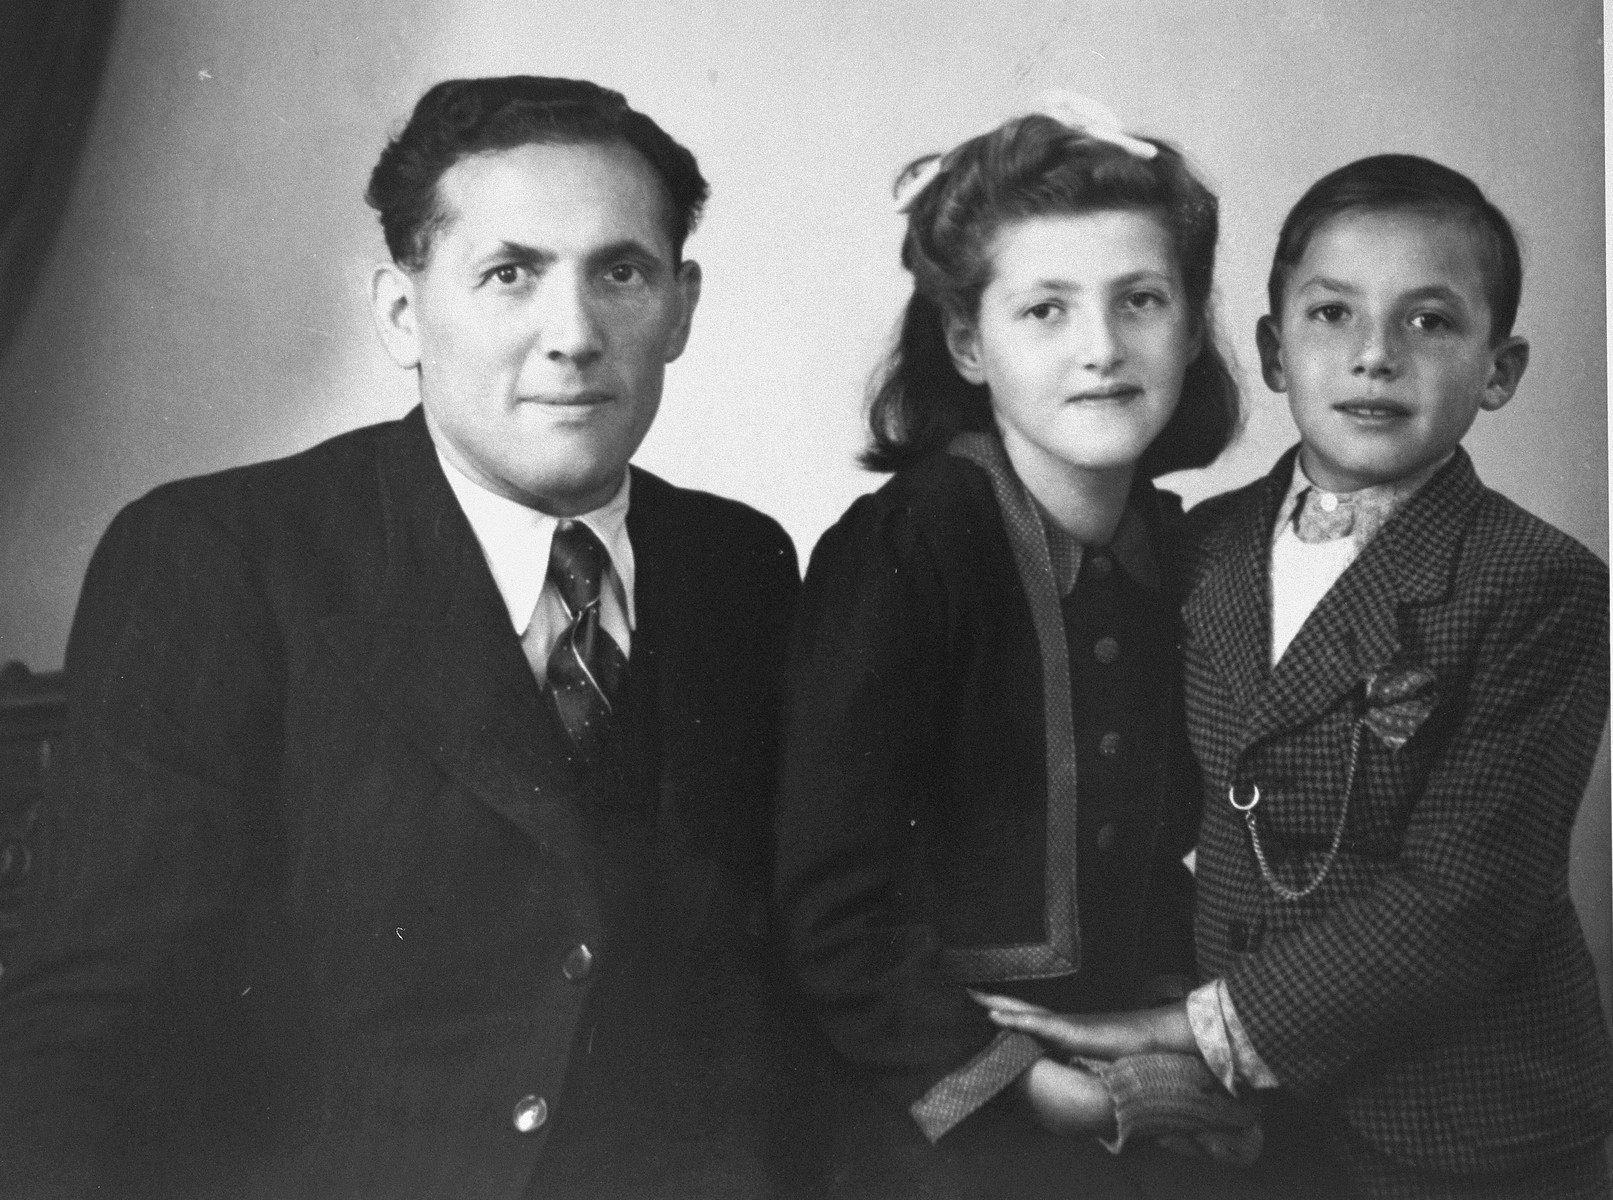 Berthe and Jacques Lewkowitz with their father during the war.